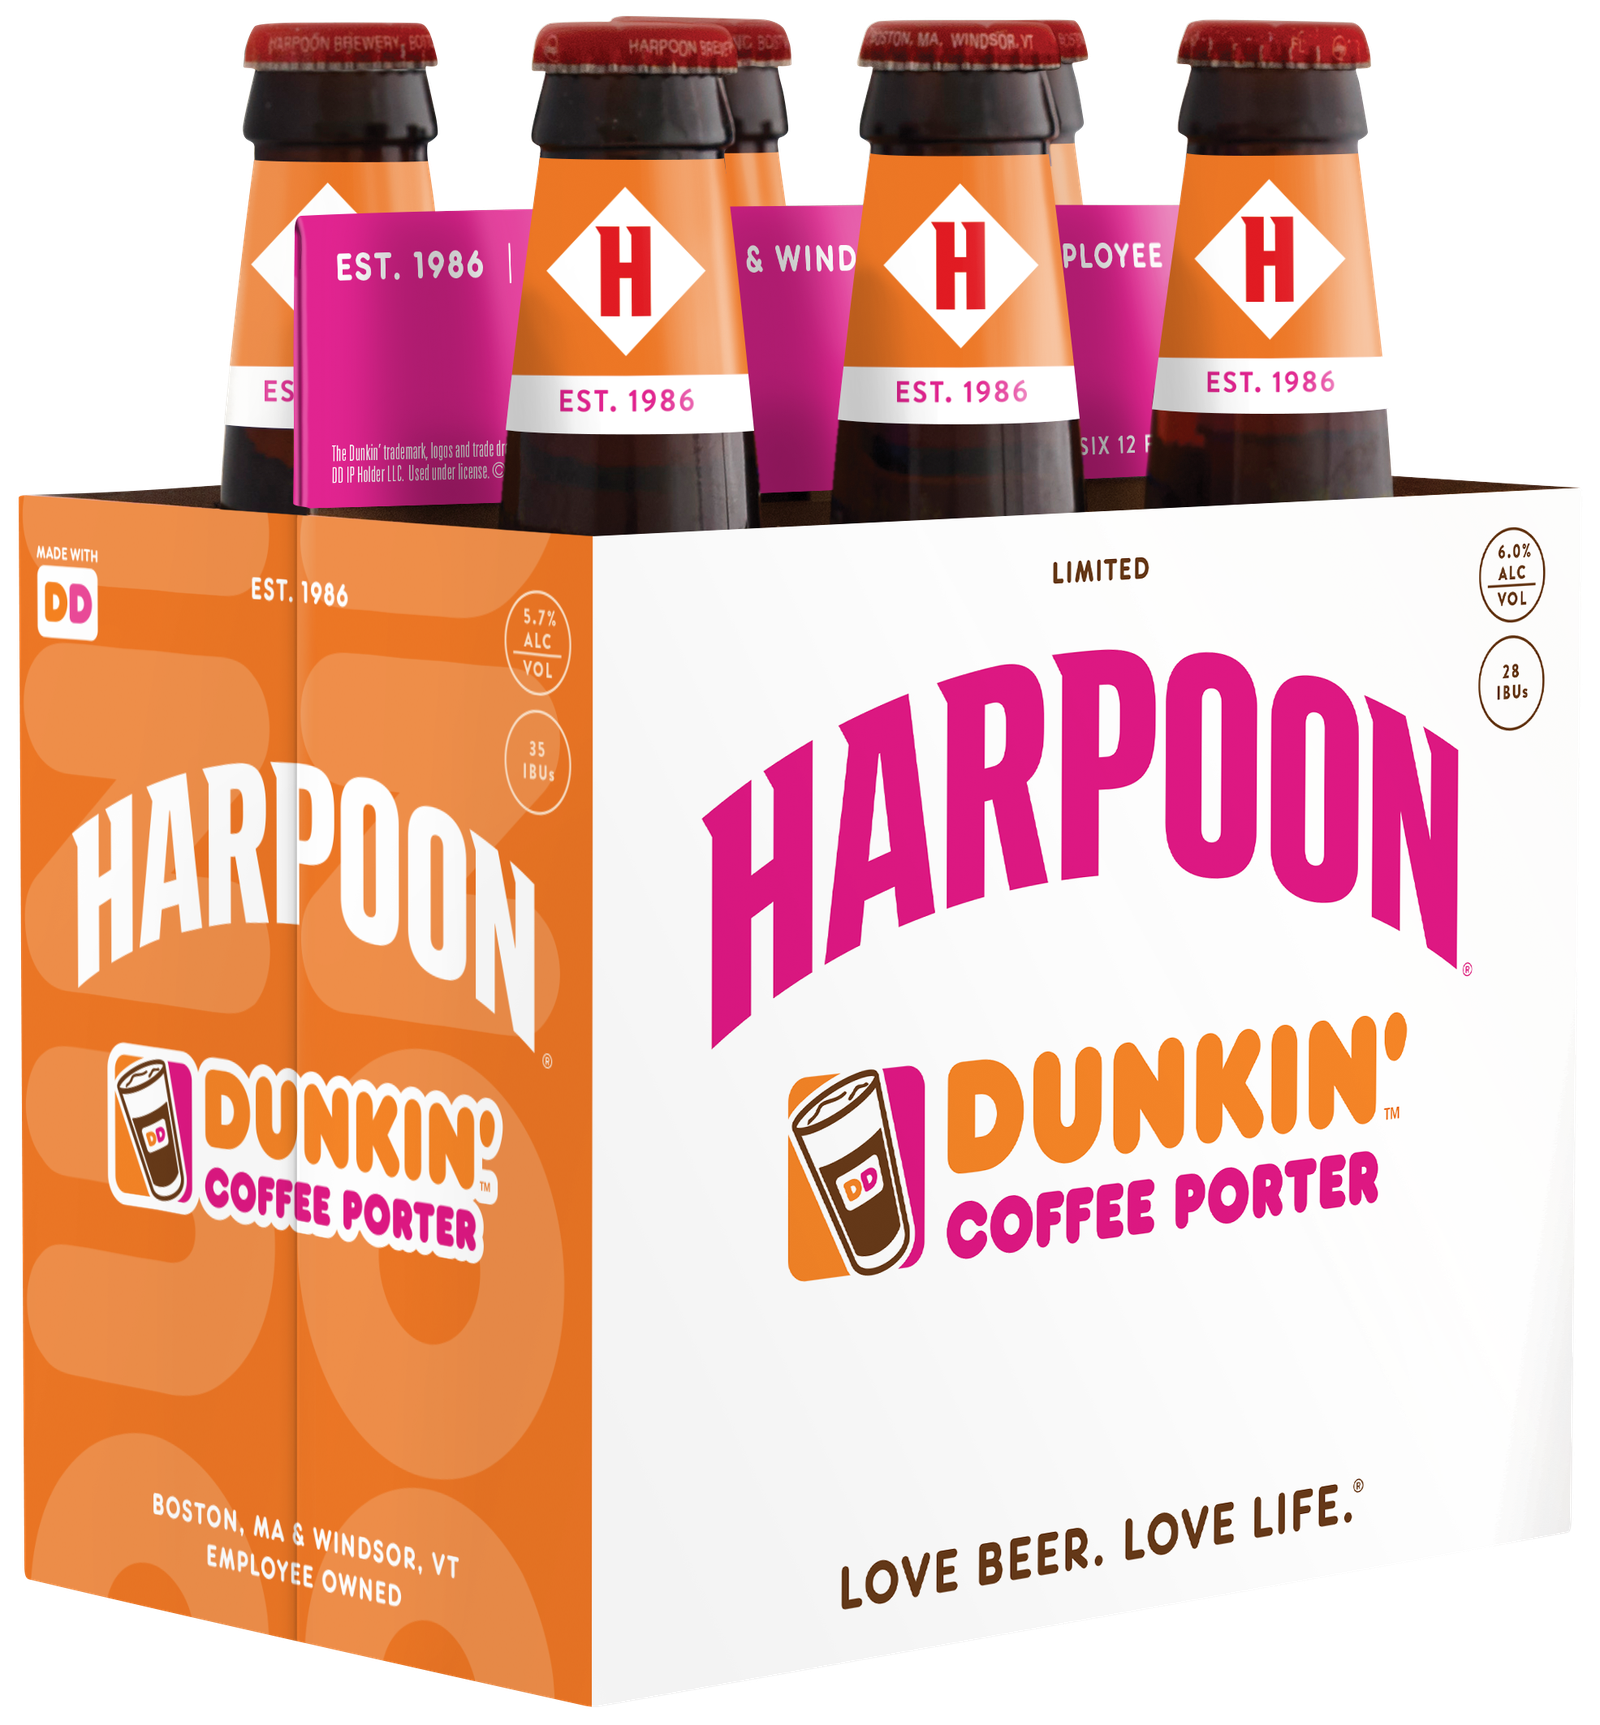 Dunkin Donuts Peppermint Coffee Chocolate peppermint